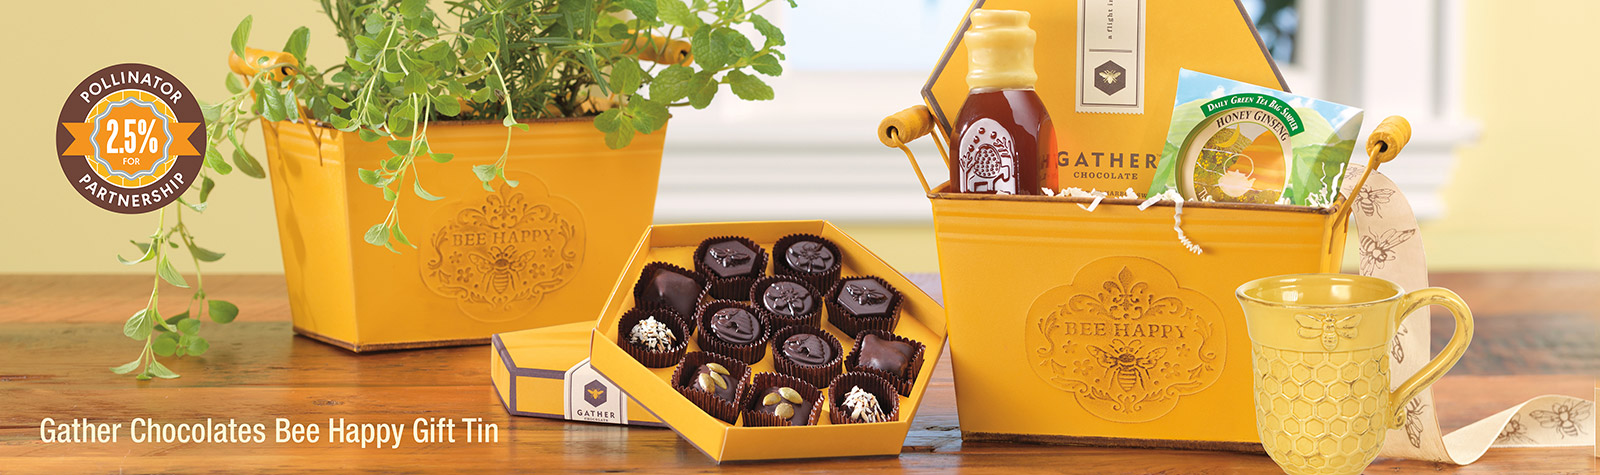 Gather Chocolate Gifts - Harbor Sweets